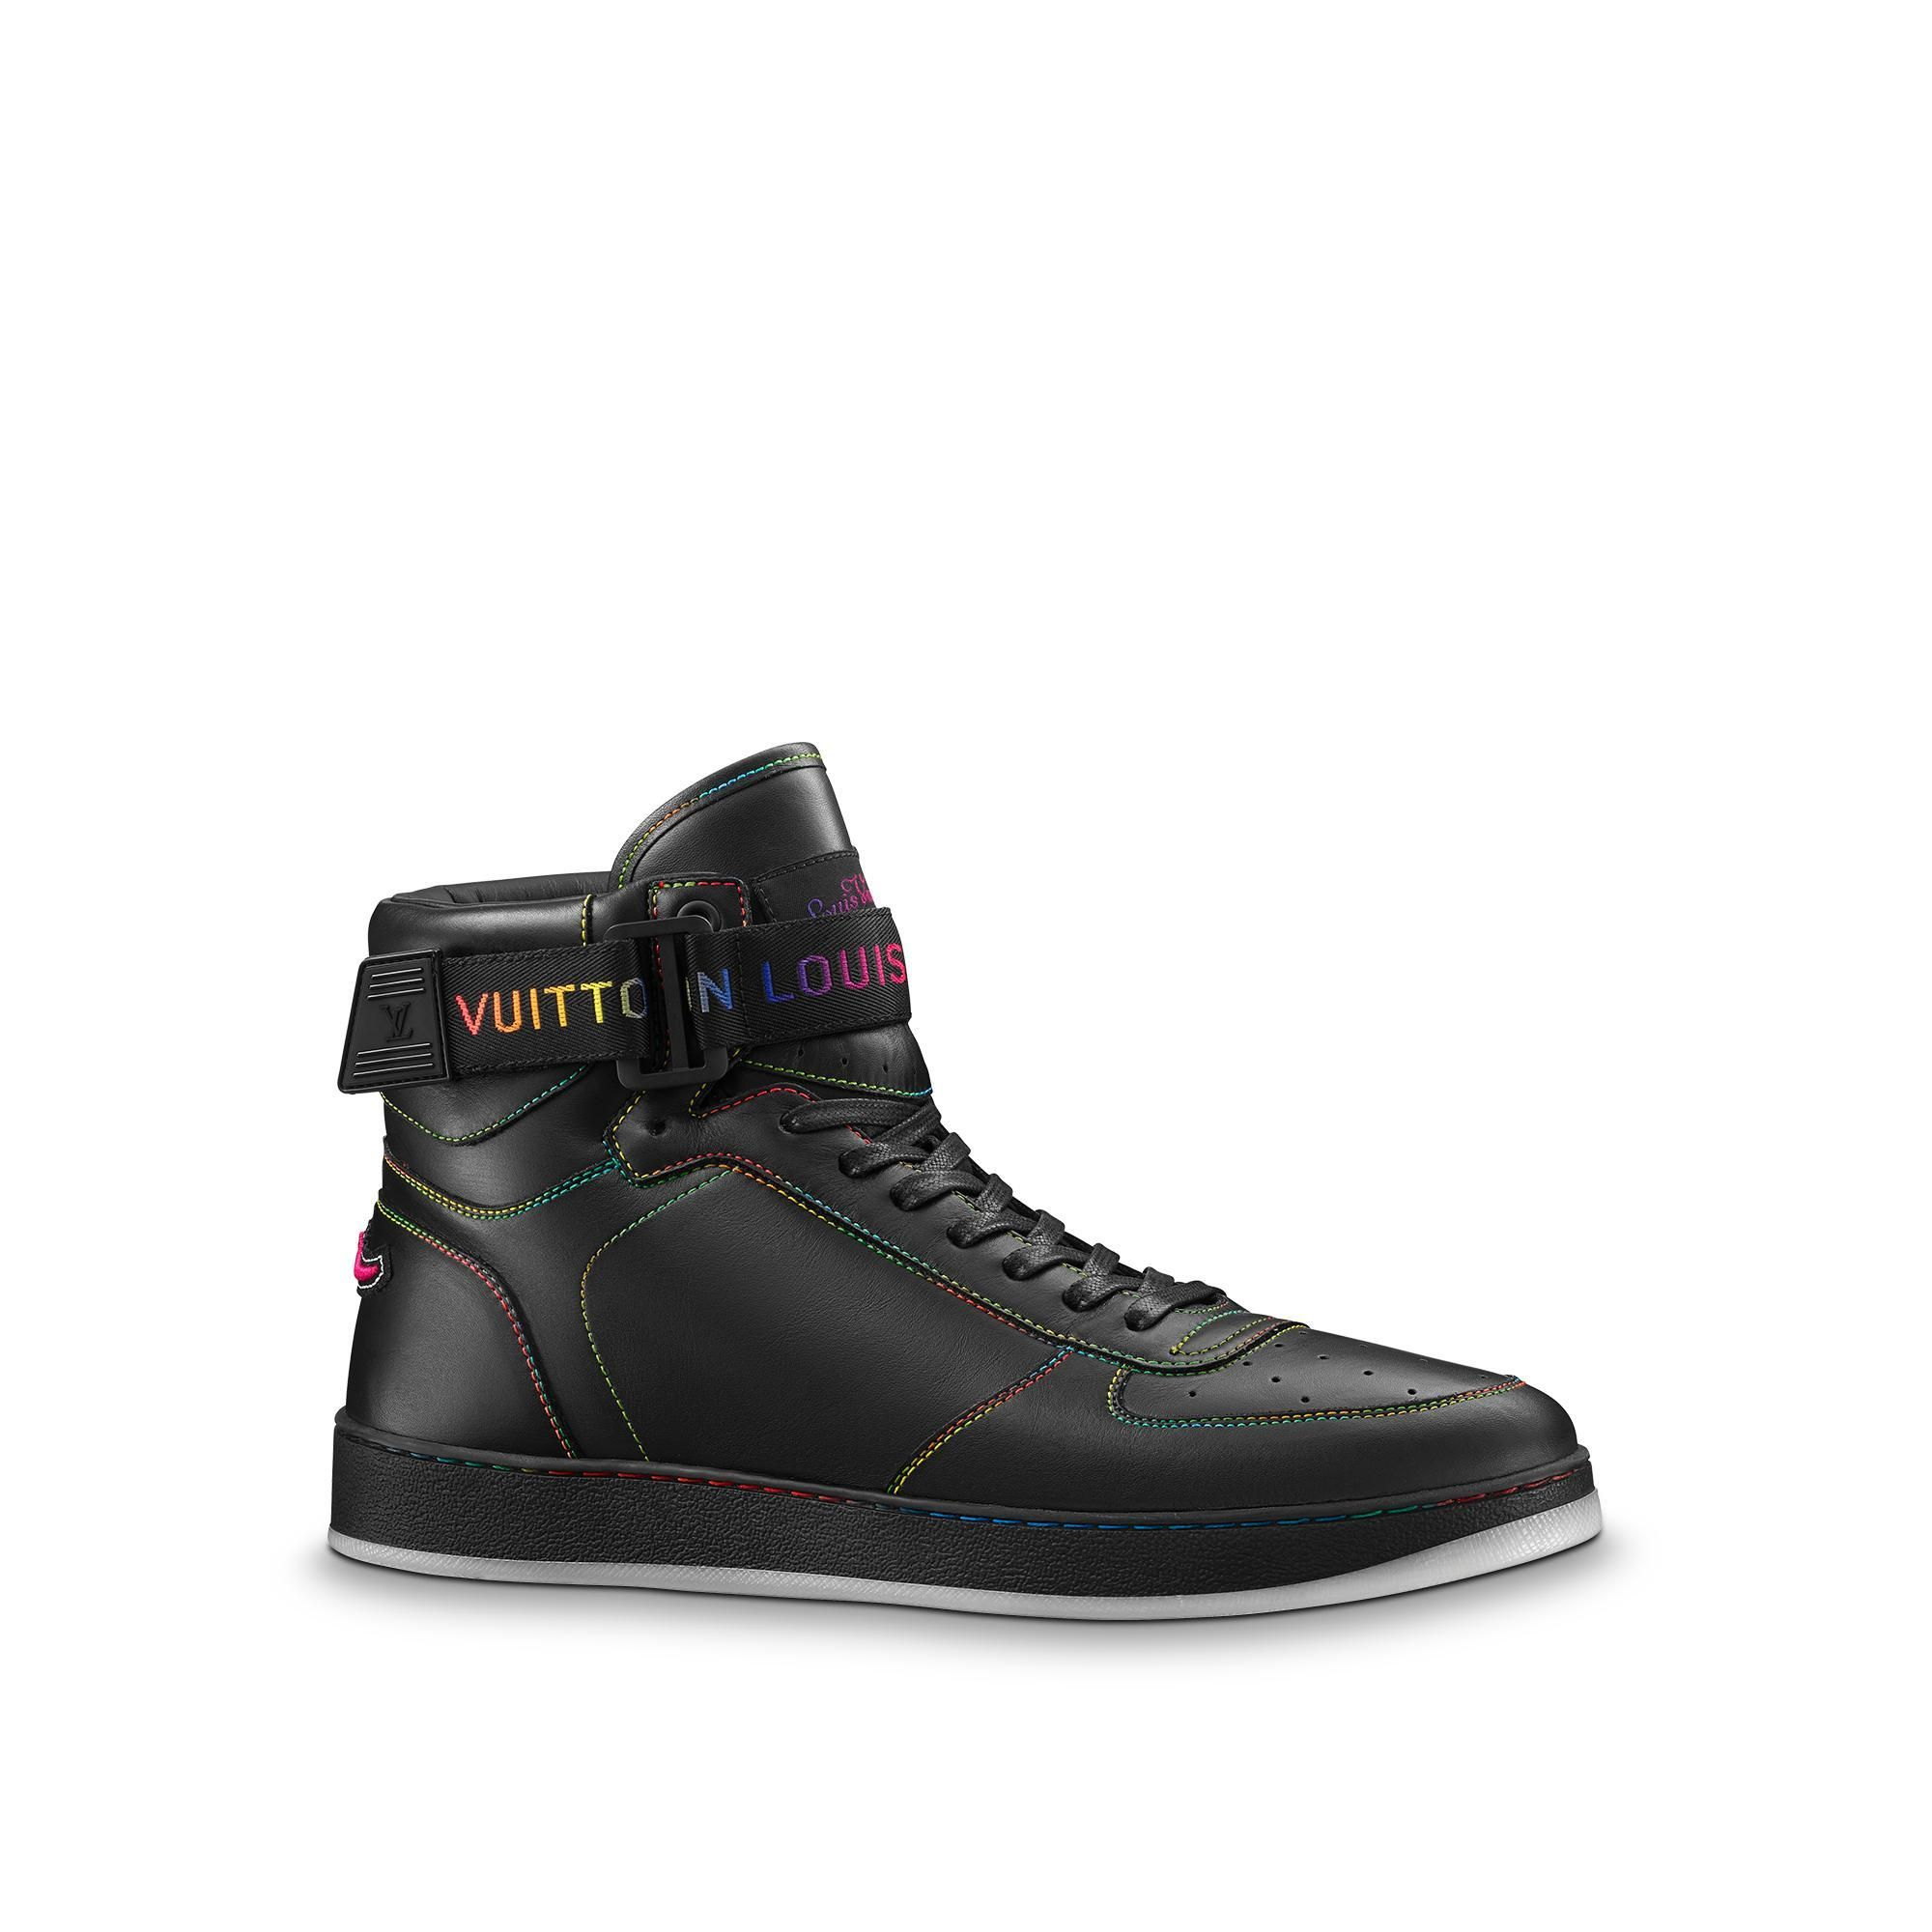 013aa7df35d7 Designer Sneakers for Men. LOUIS VUITTON Rivoli Sneaker.  louisvuitton   shoes